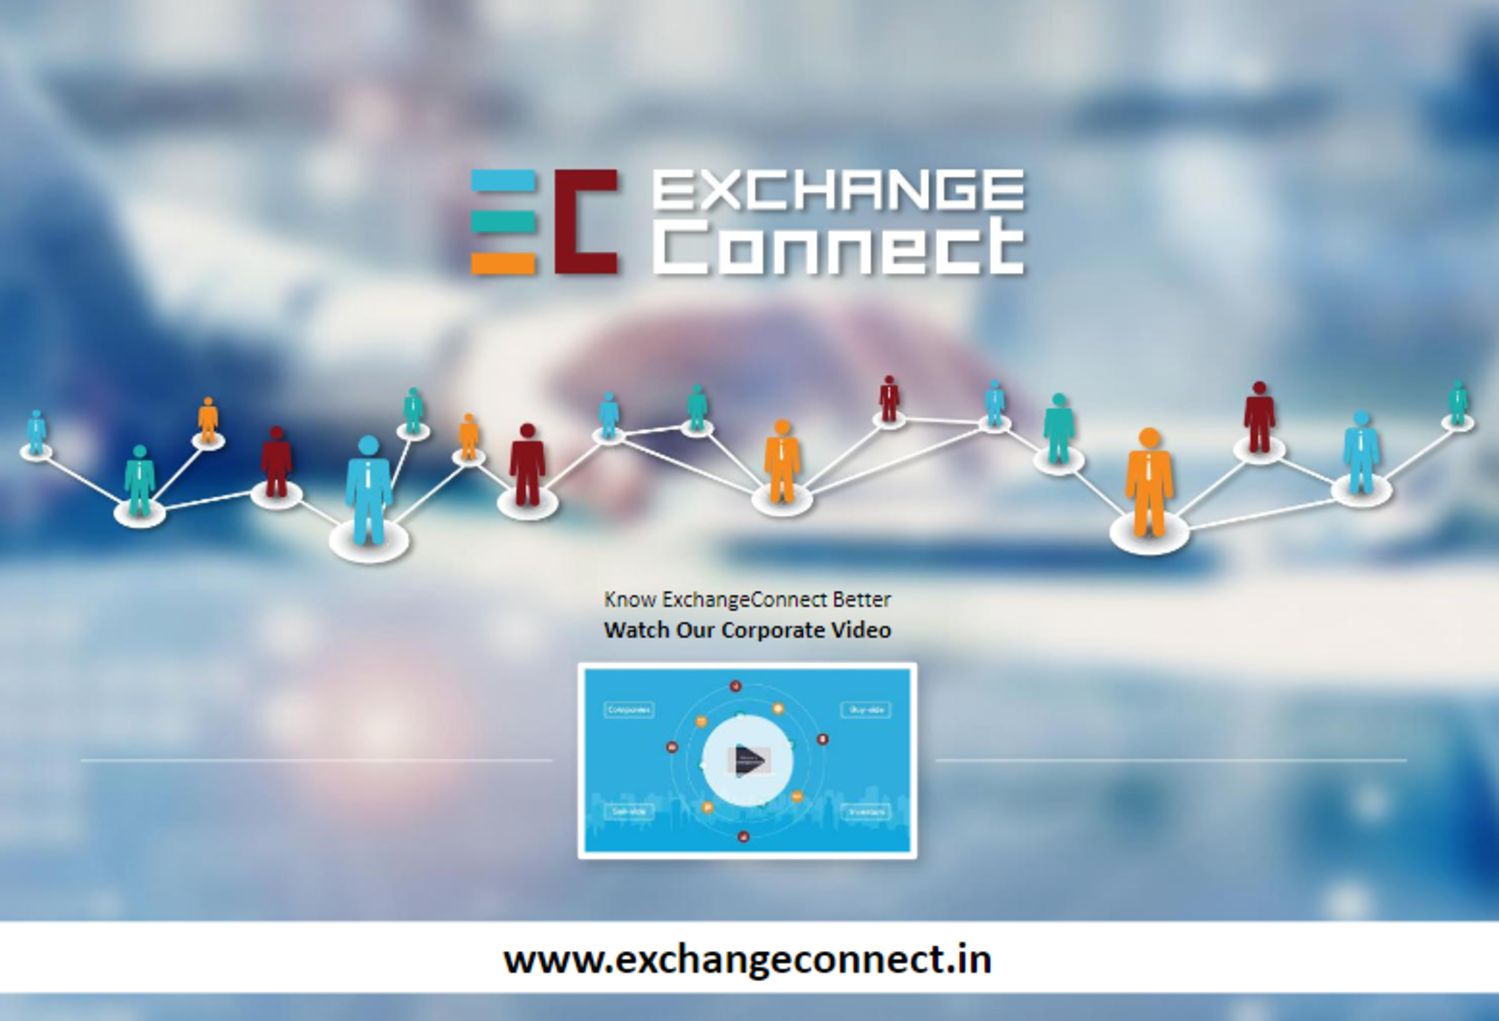 Exchange Connect